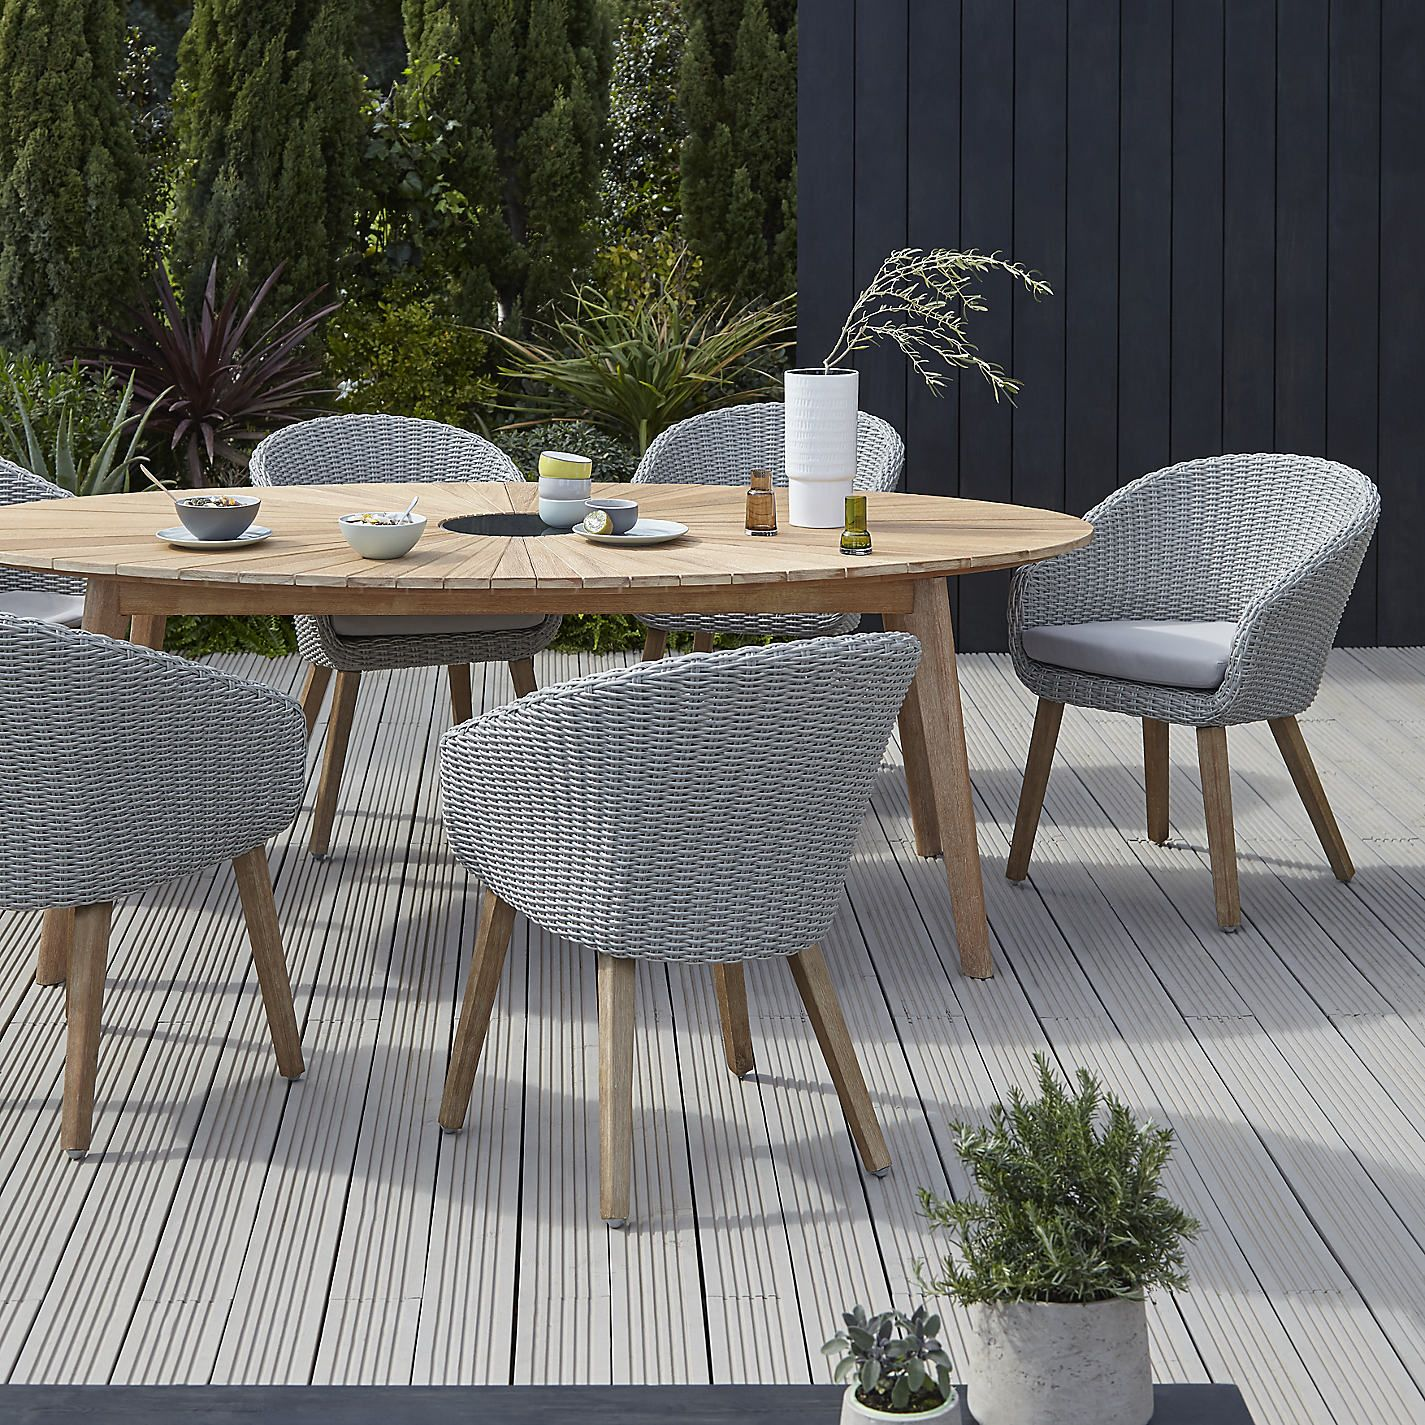 Buy john lewis sol 6 seater oval dining table chairs set fsc certified eucalyptus natural from our garden furniture sets range at john lewis